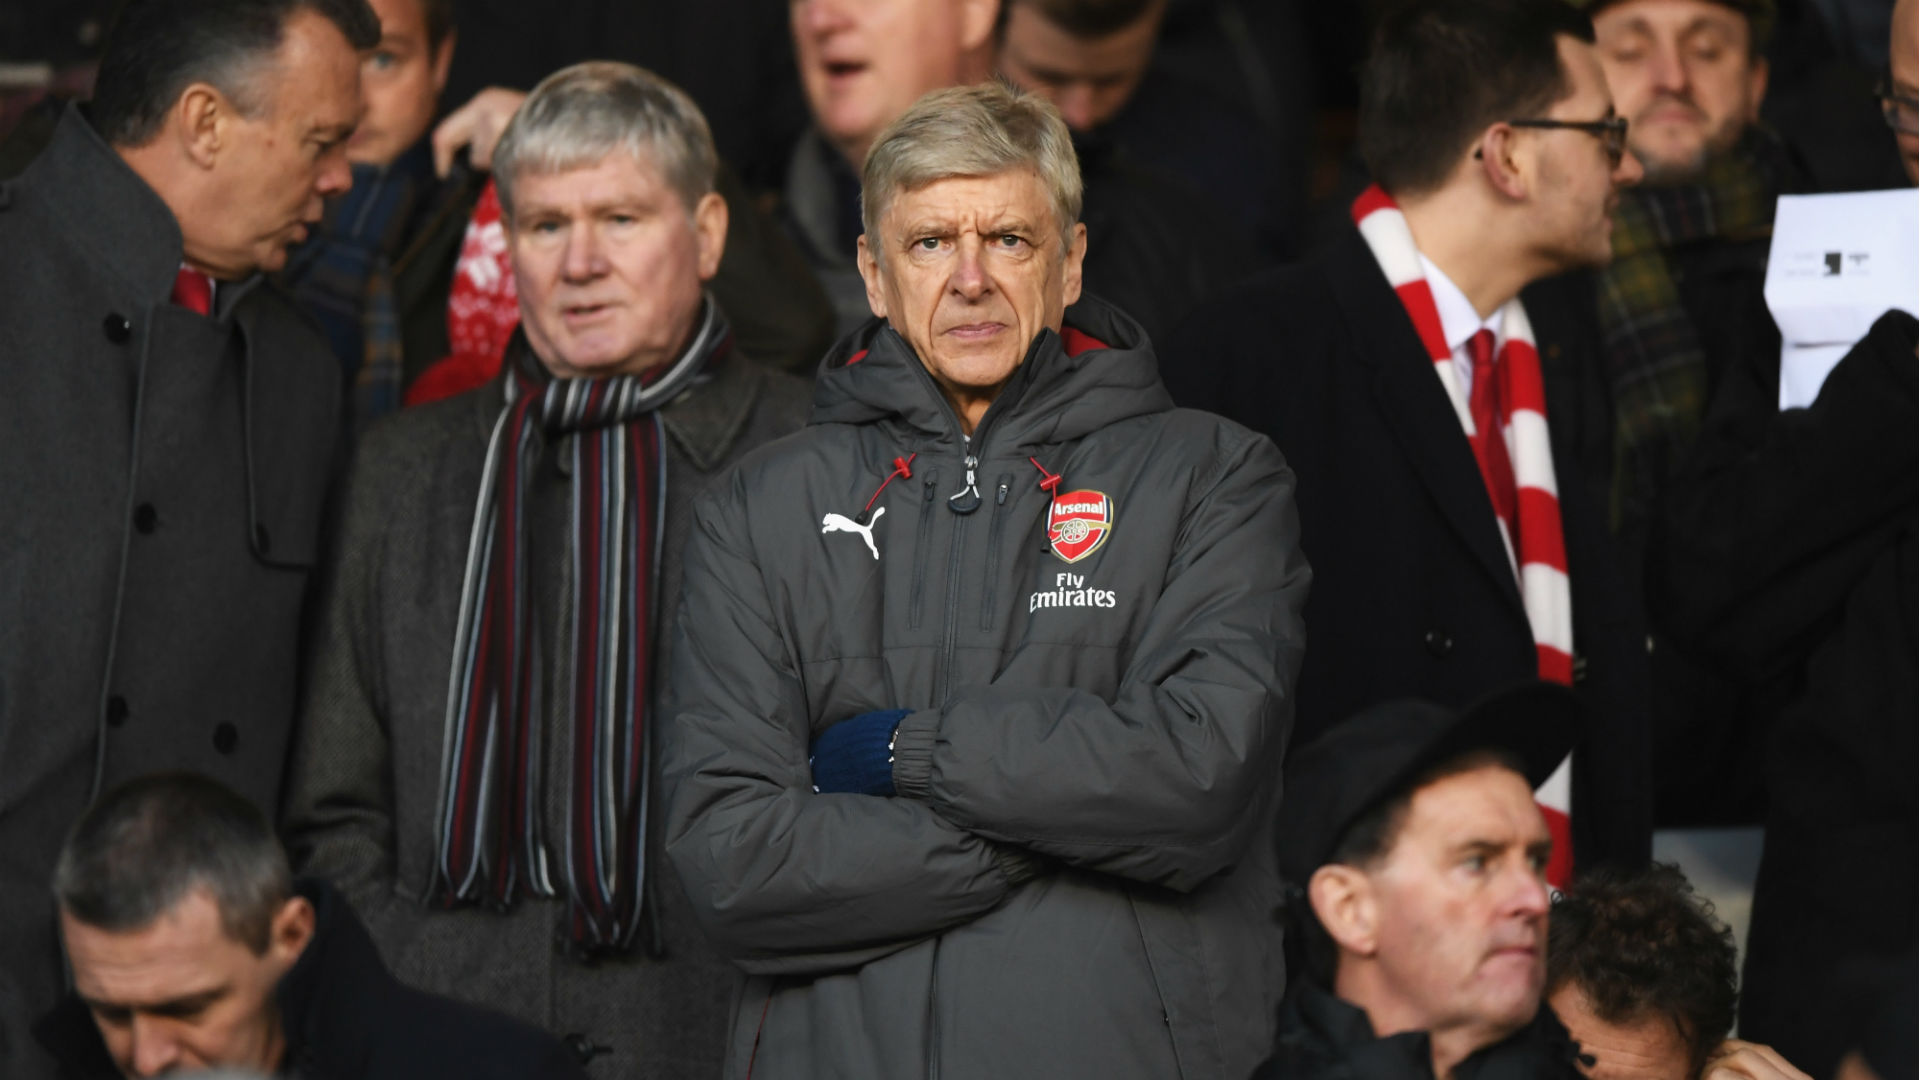 Arsenal manager Wenger given touchline ban, fine for referee incident